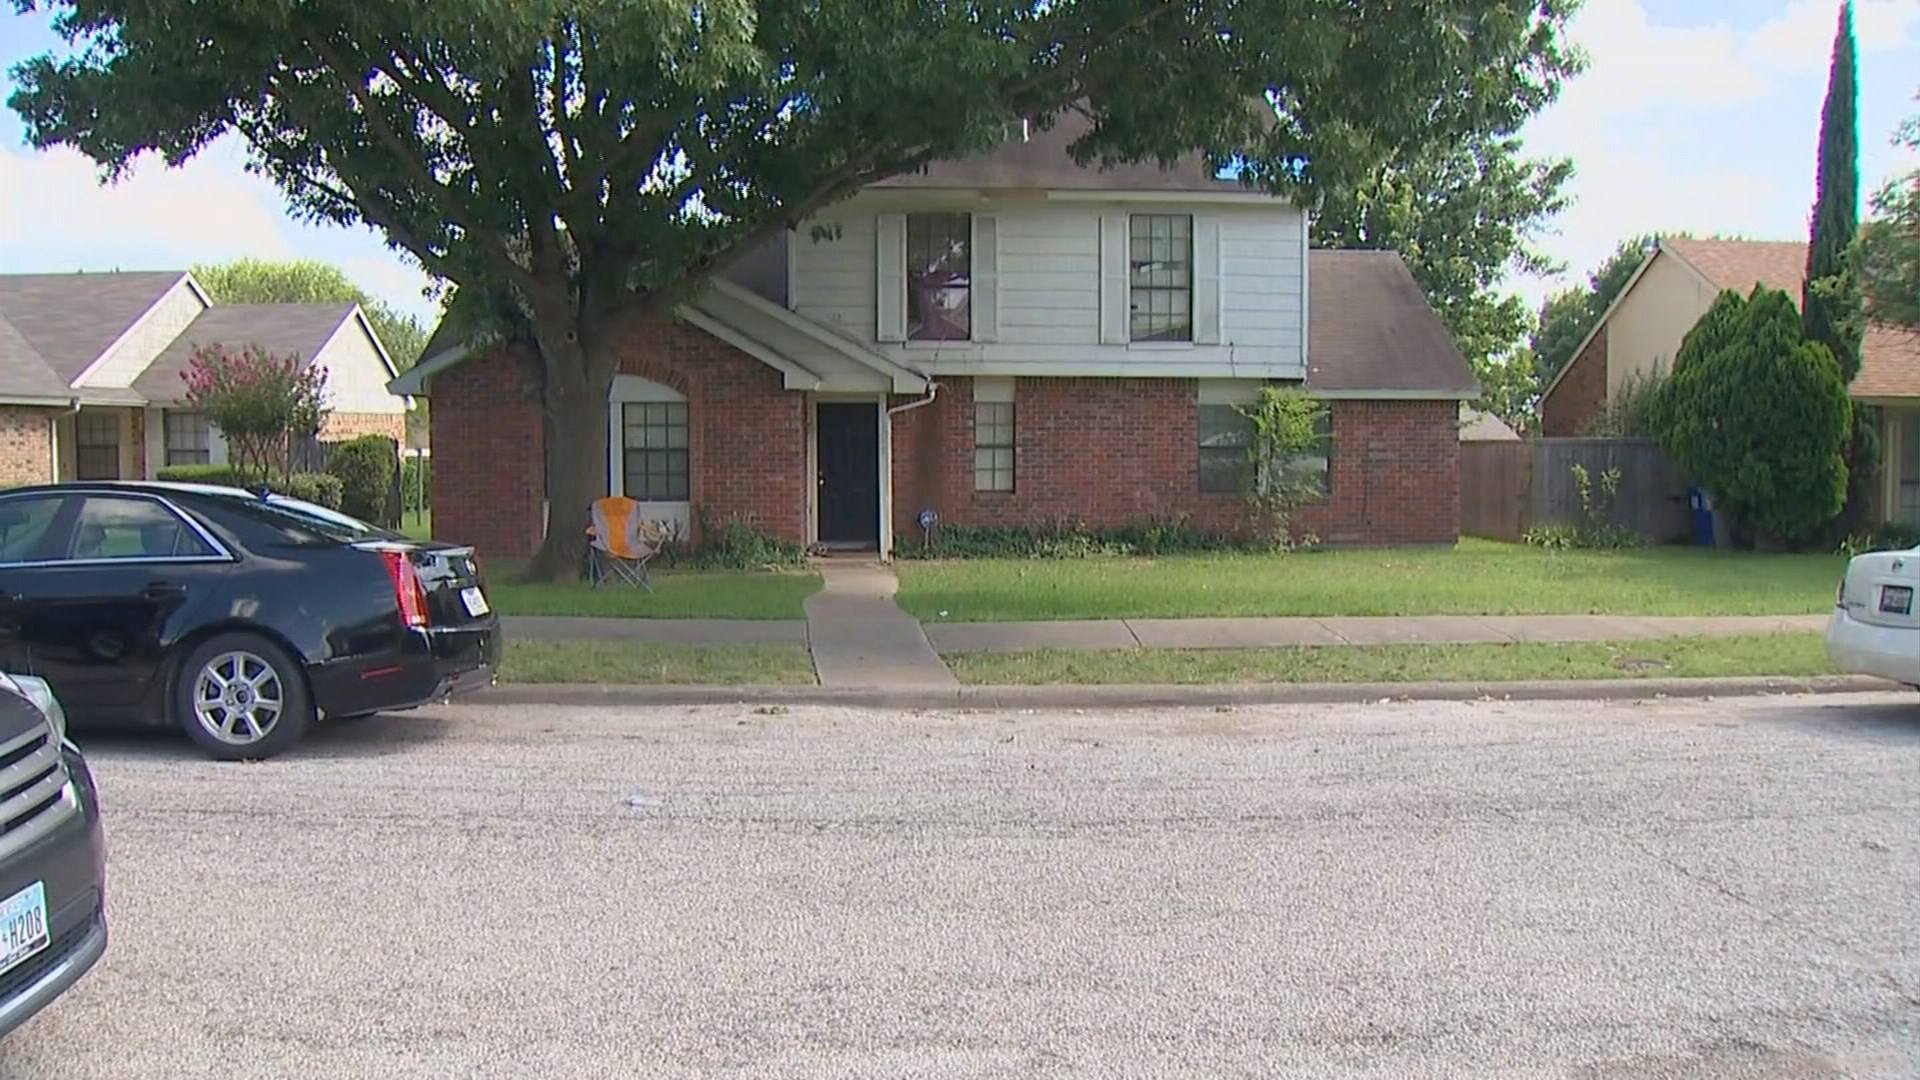 Warrant Drugs sold at home where Lancaster teen was kidnapped